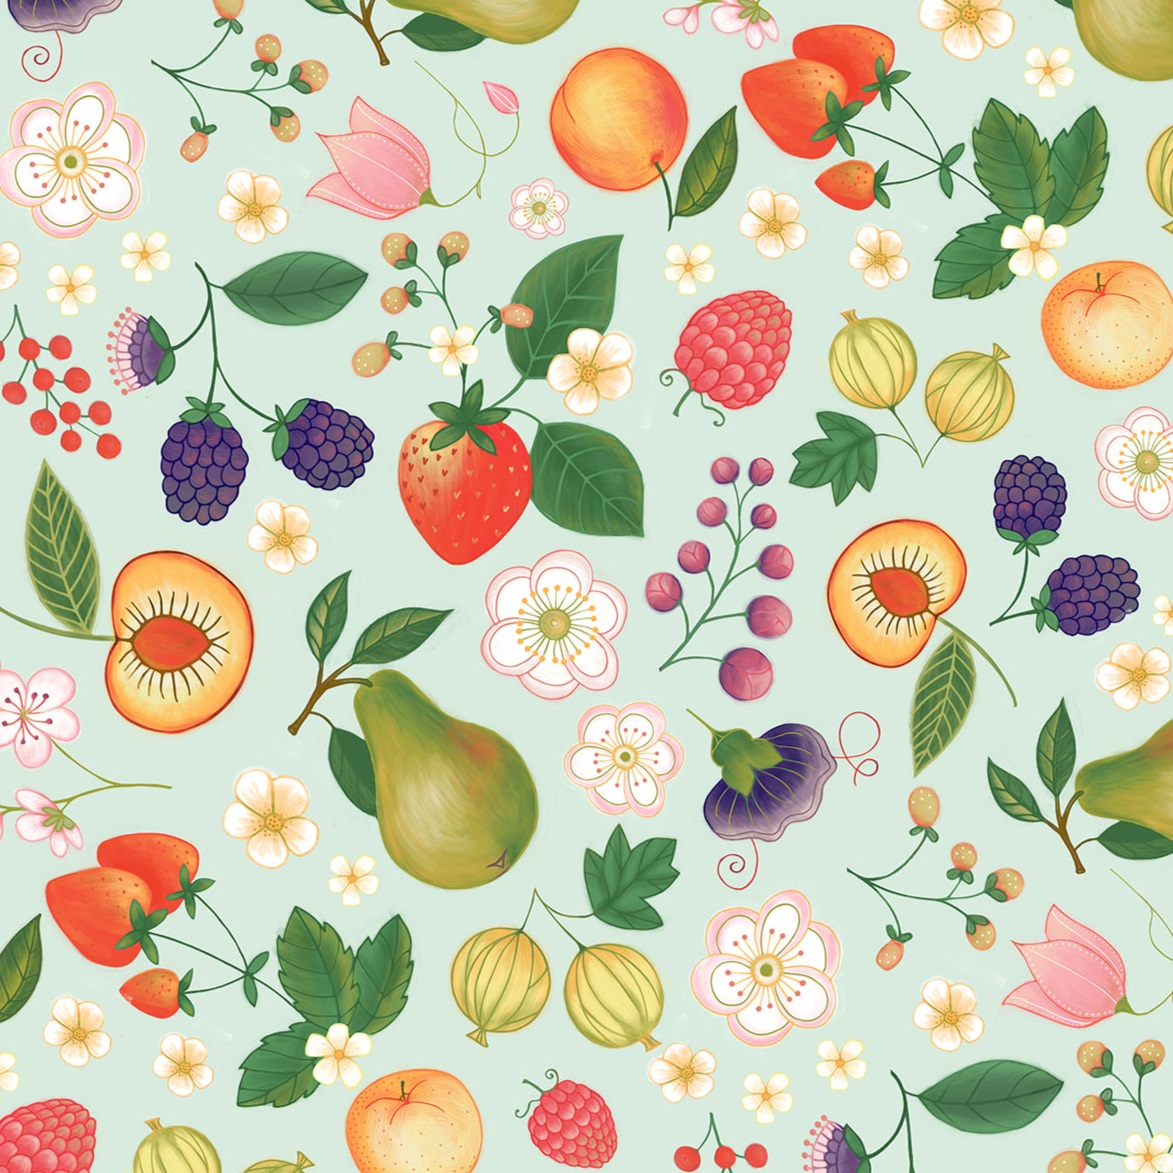 HM_19001_English Orchard pattern.jpg